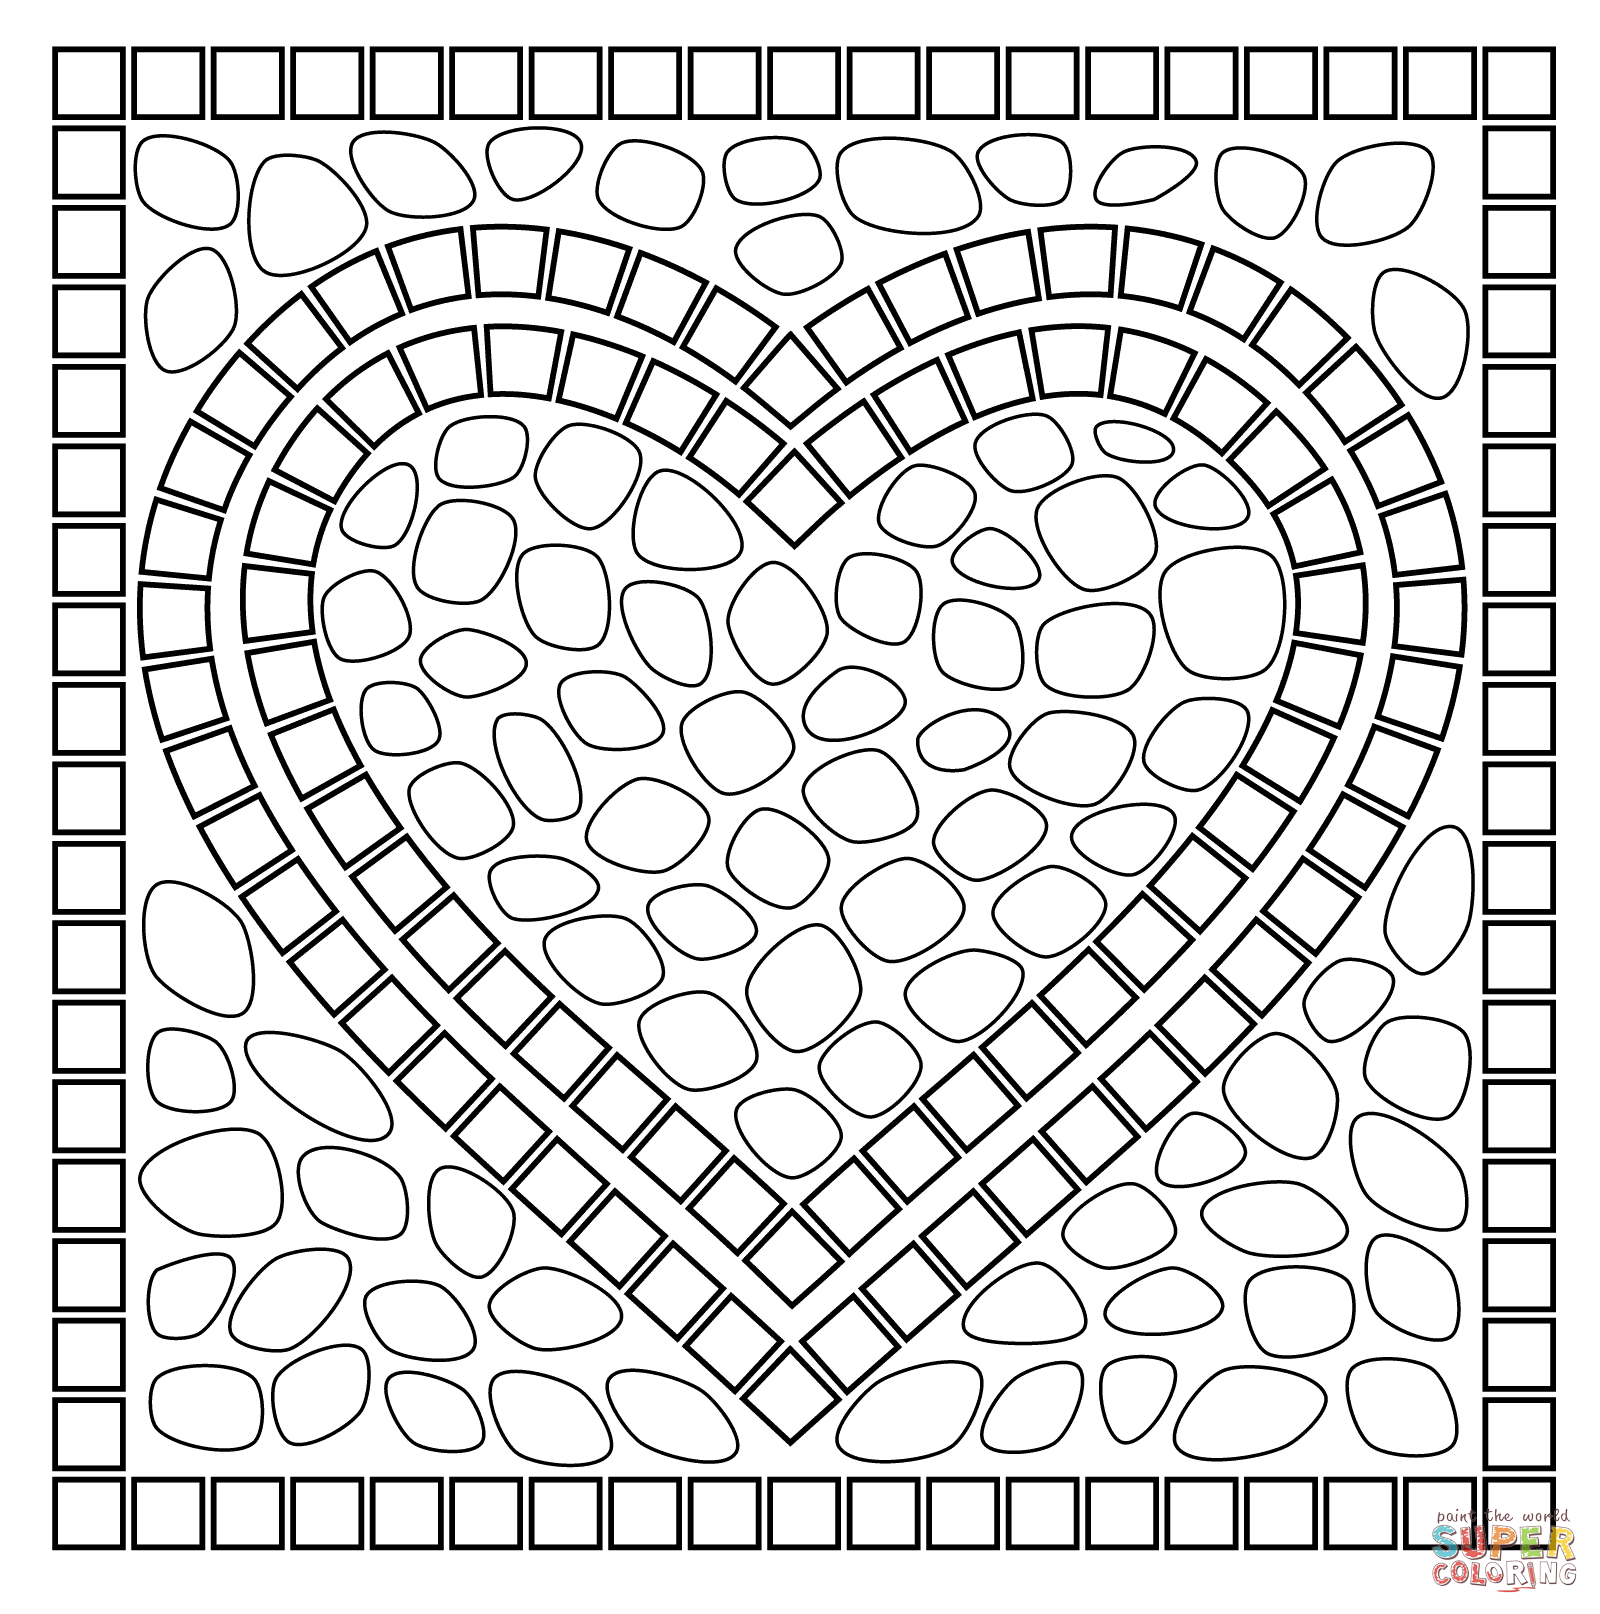 Valentines day mandala coloring pages - Mosaic Heart Coloring Page Free Printable Coloring Pages